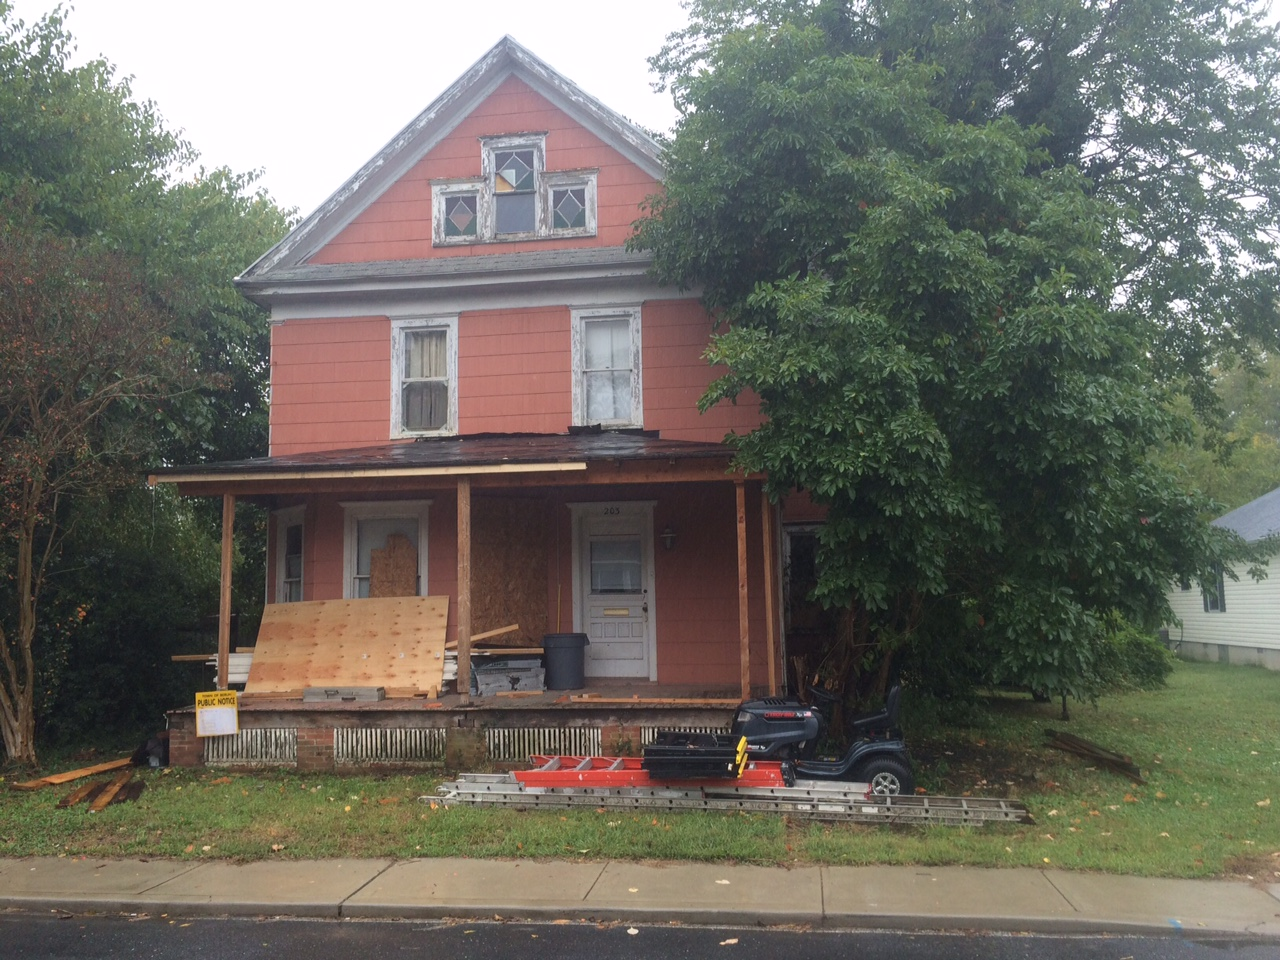 The house at 203 Washington St. has been an eyesore and nuisance for residents for the last 10 years.